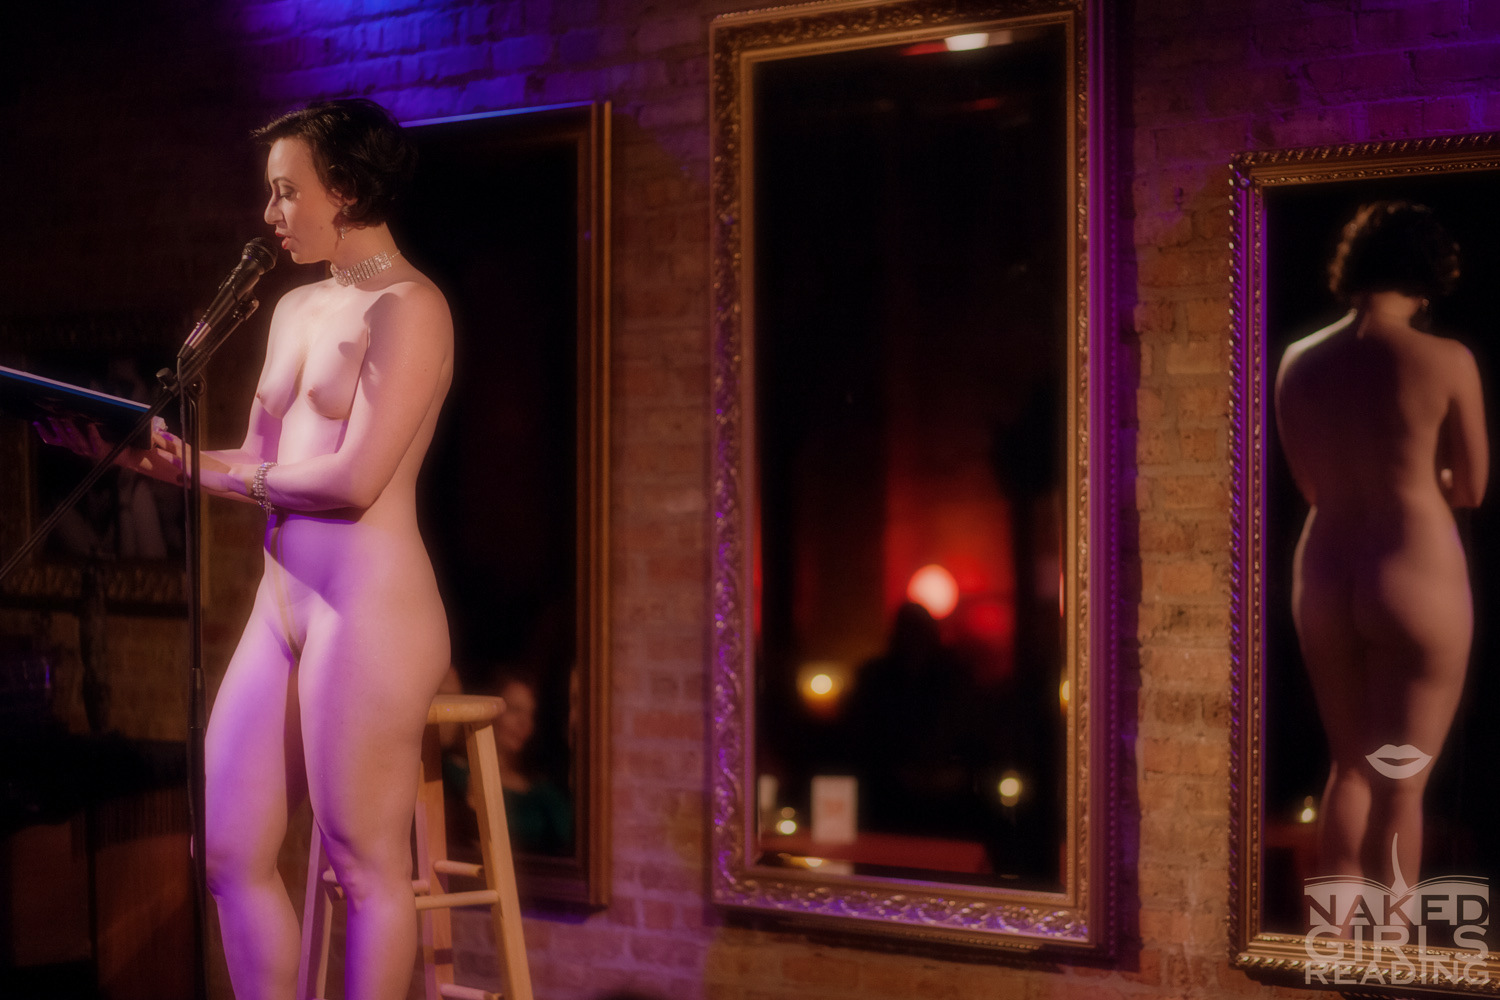 A nude actor, writer, and comedian in las vegas